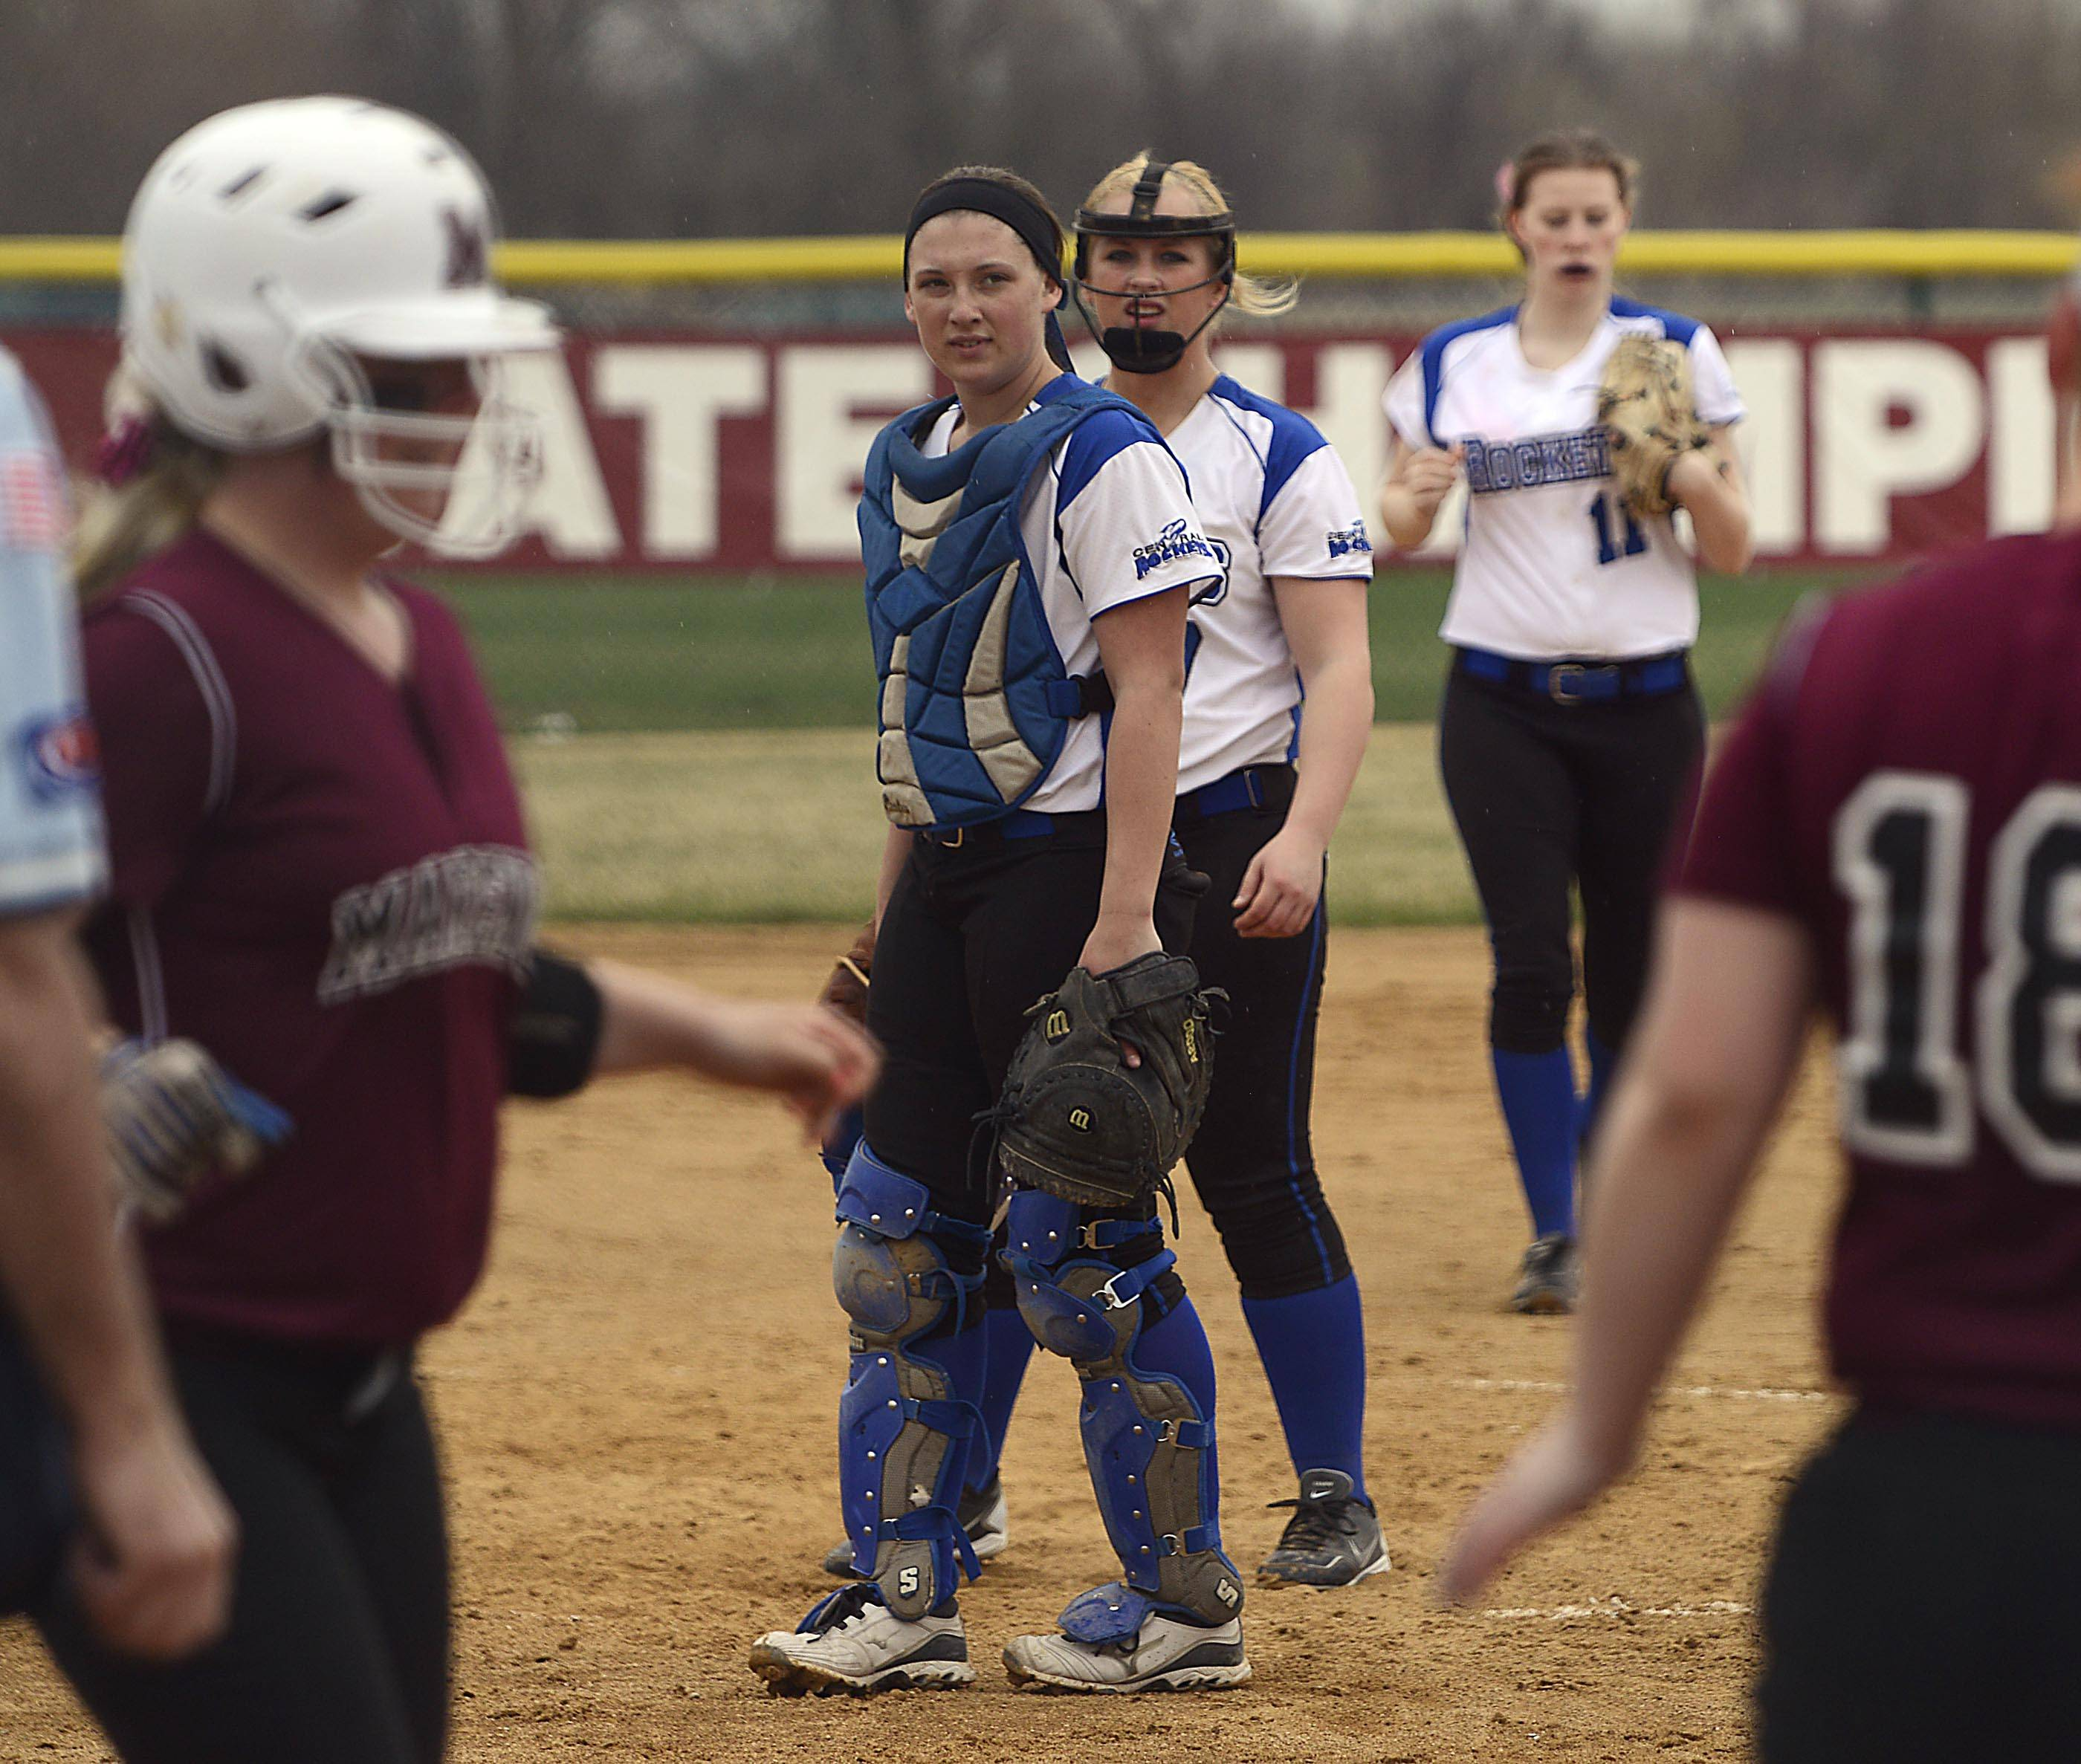 Burlington Central catcher Bekah Harnish and pitcher Brooke Gaylord watch as Marengo's Abby Kissack approaches the plate after her game-tying home run in the sixth inning Monday in Marengo.